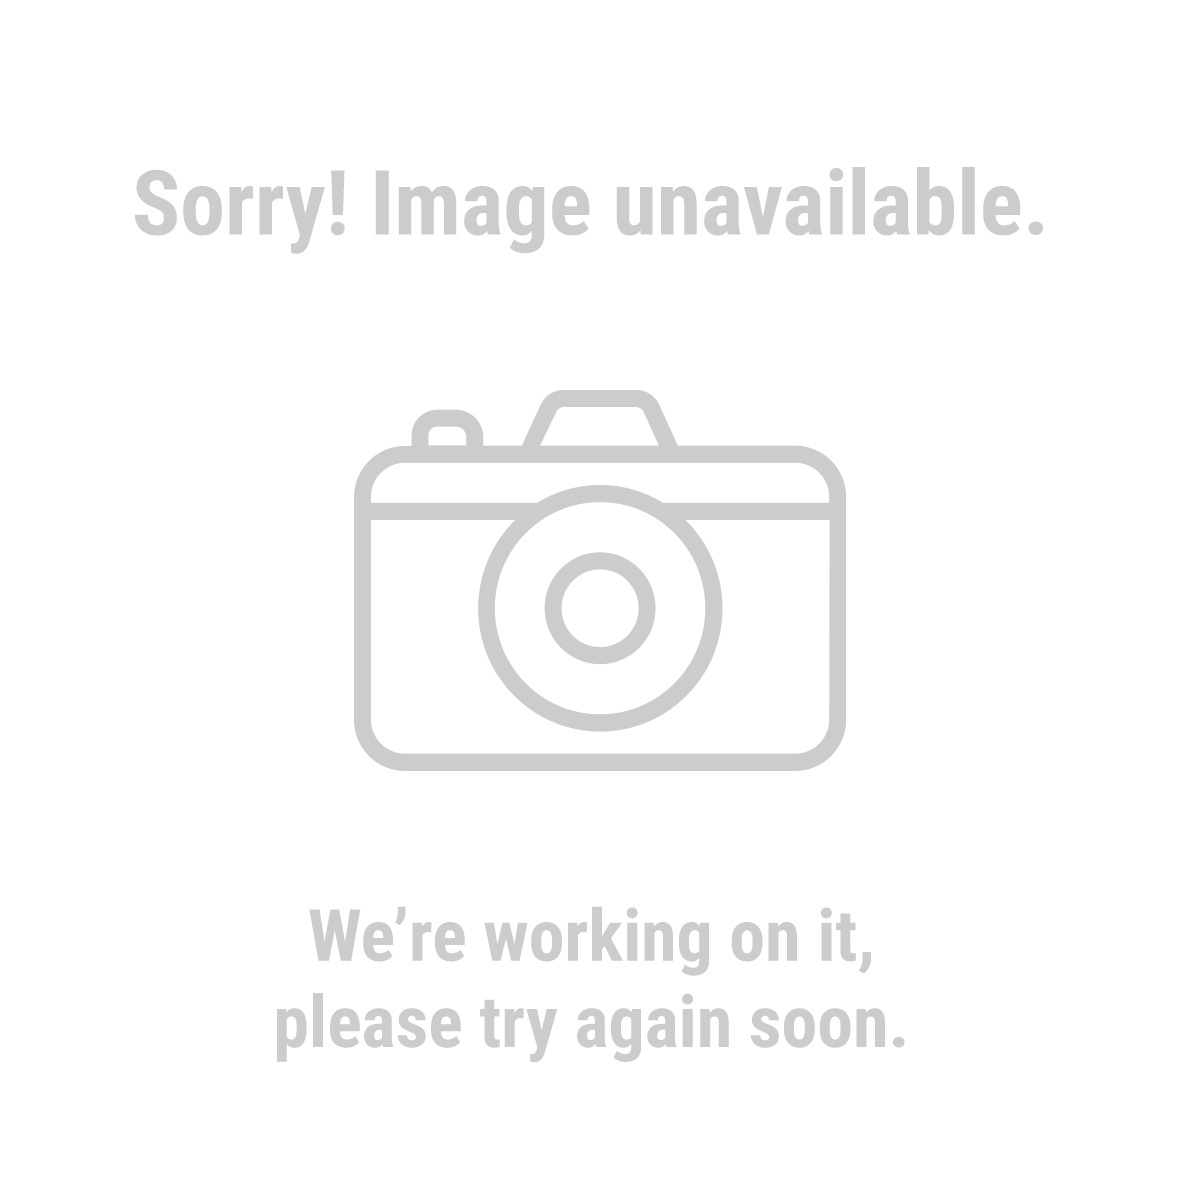 U.S. General 69322 Magnetic Glove/Tissue Dispenser